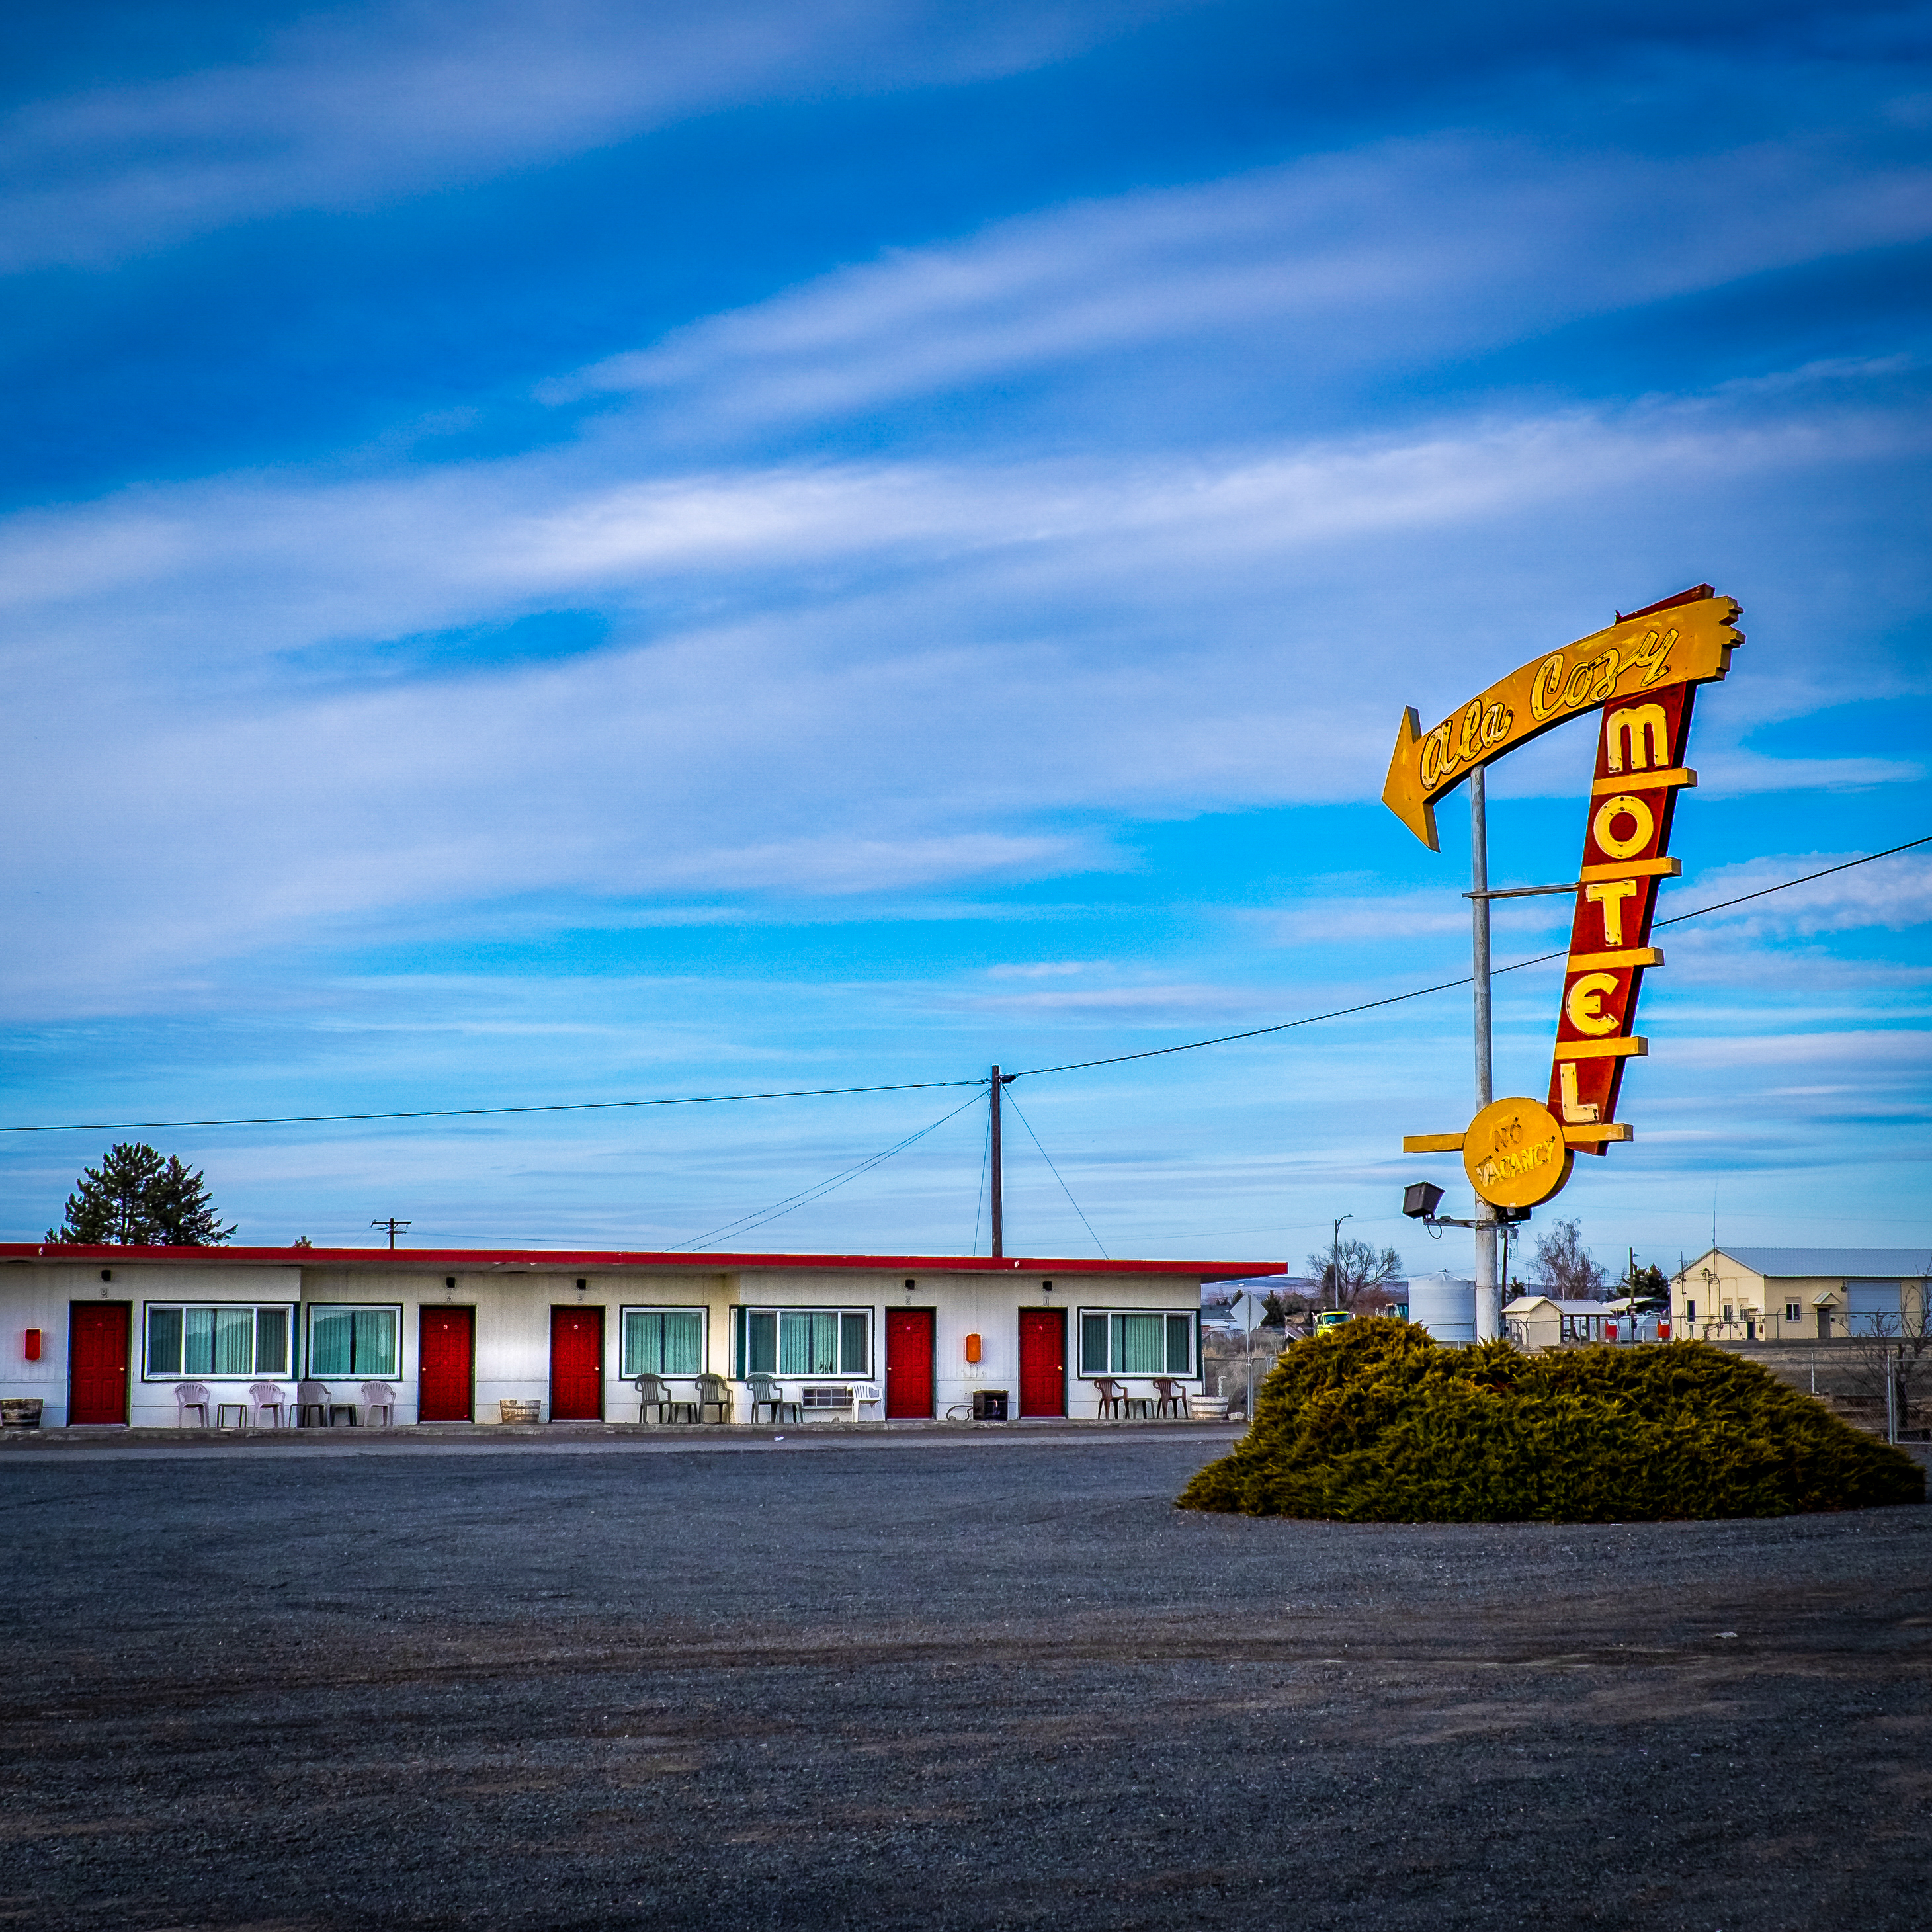 Ala Cozy Motel - 9988 U.S. 2, Coulee City, Washington U.S.A. - March 22, 2019